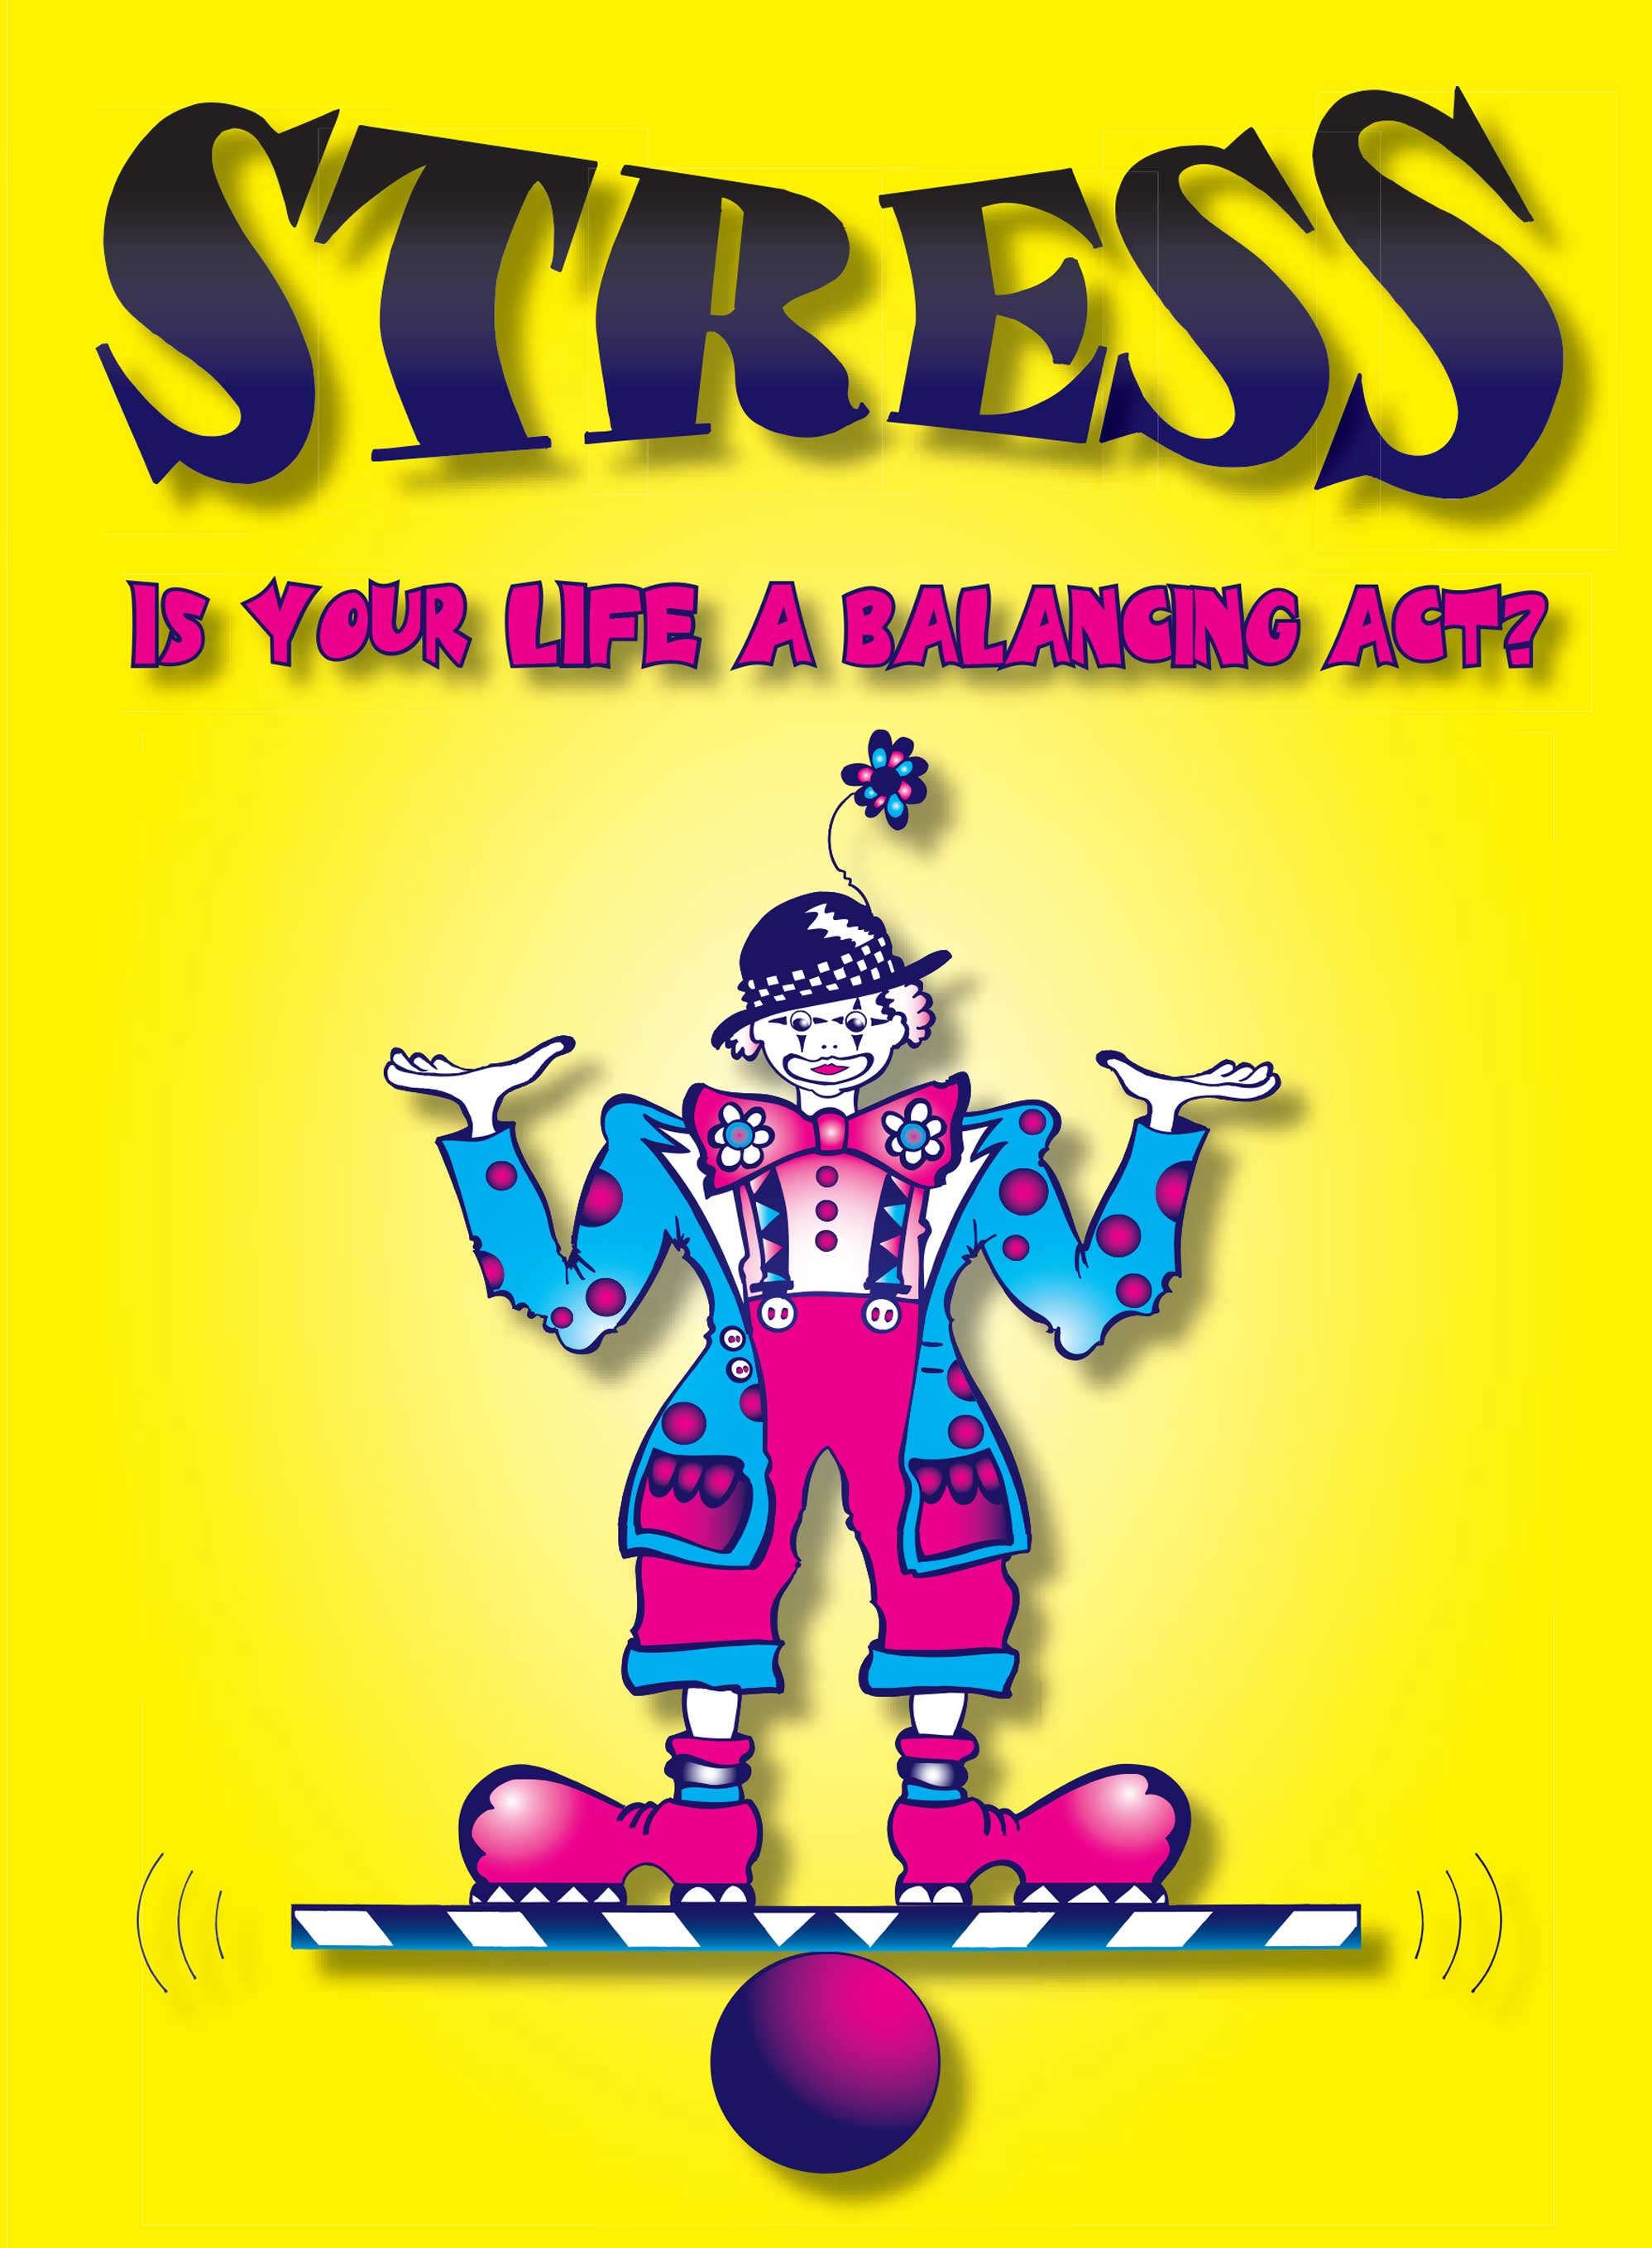 Stress - is your life a balancing act?